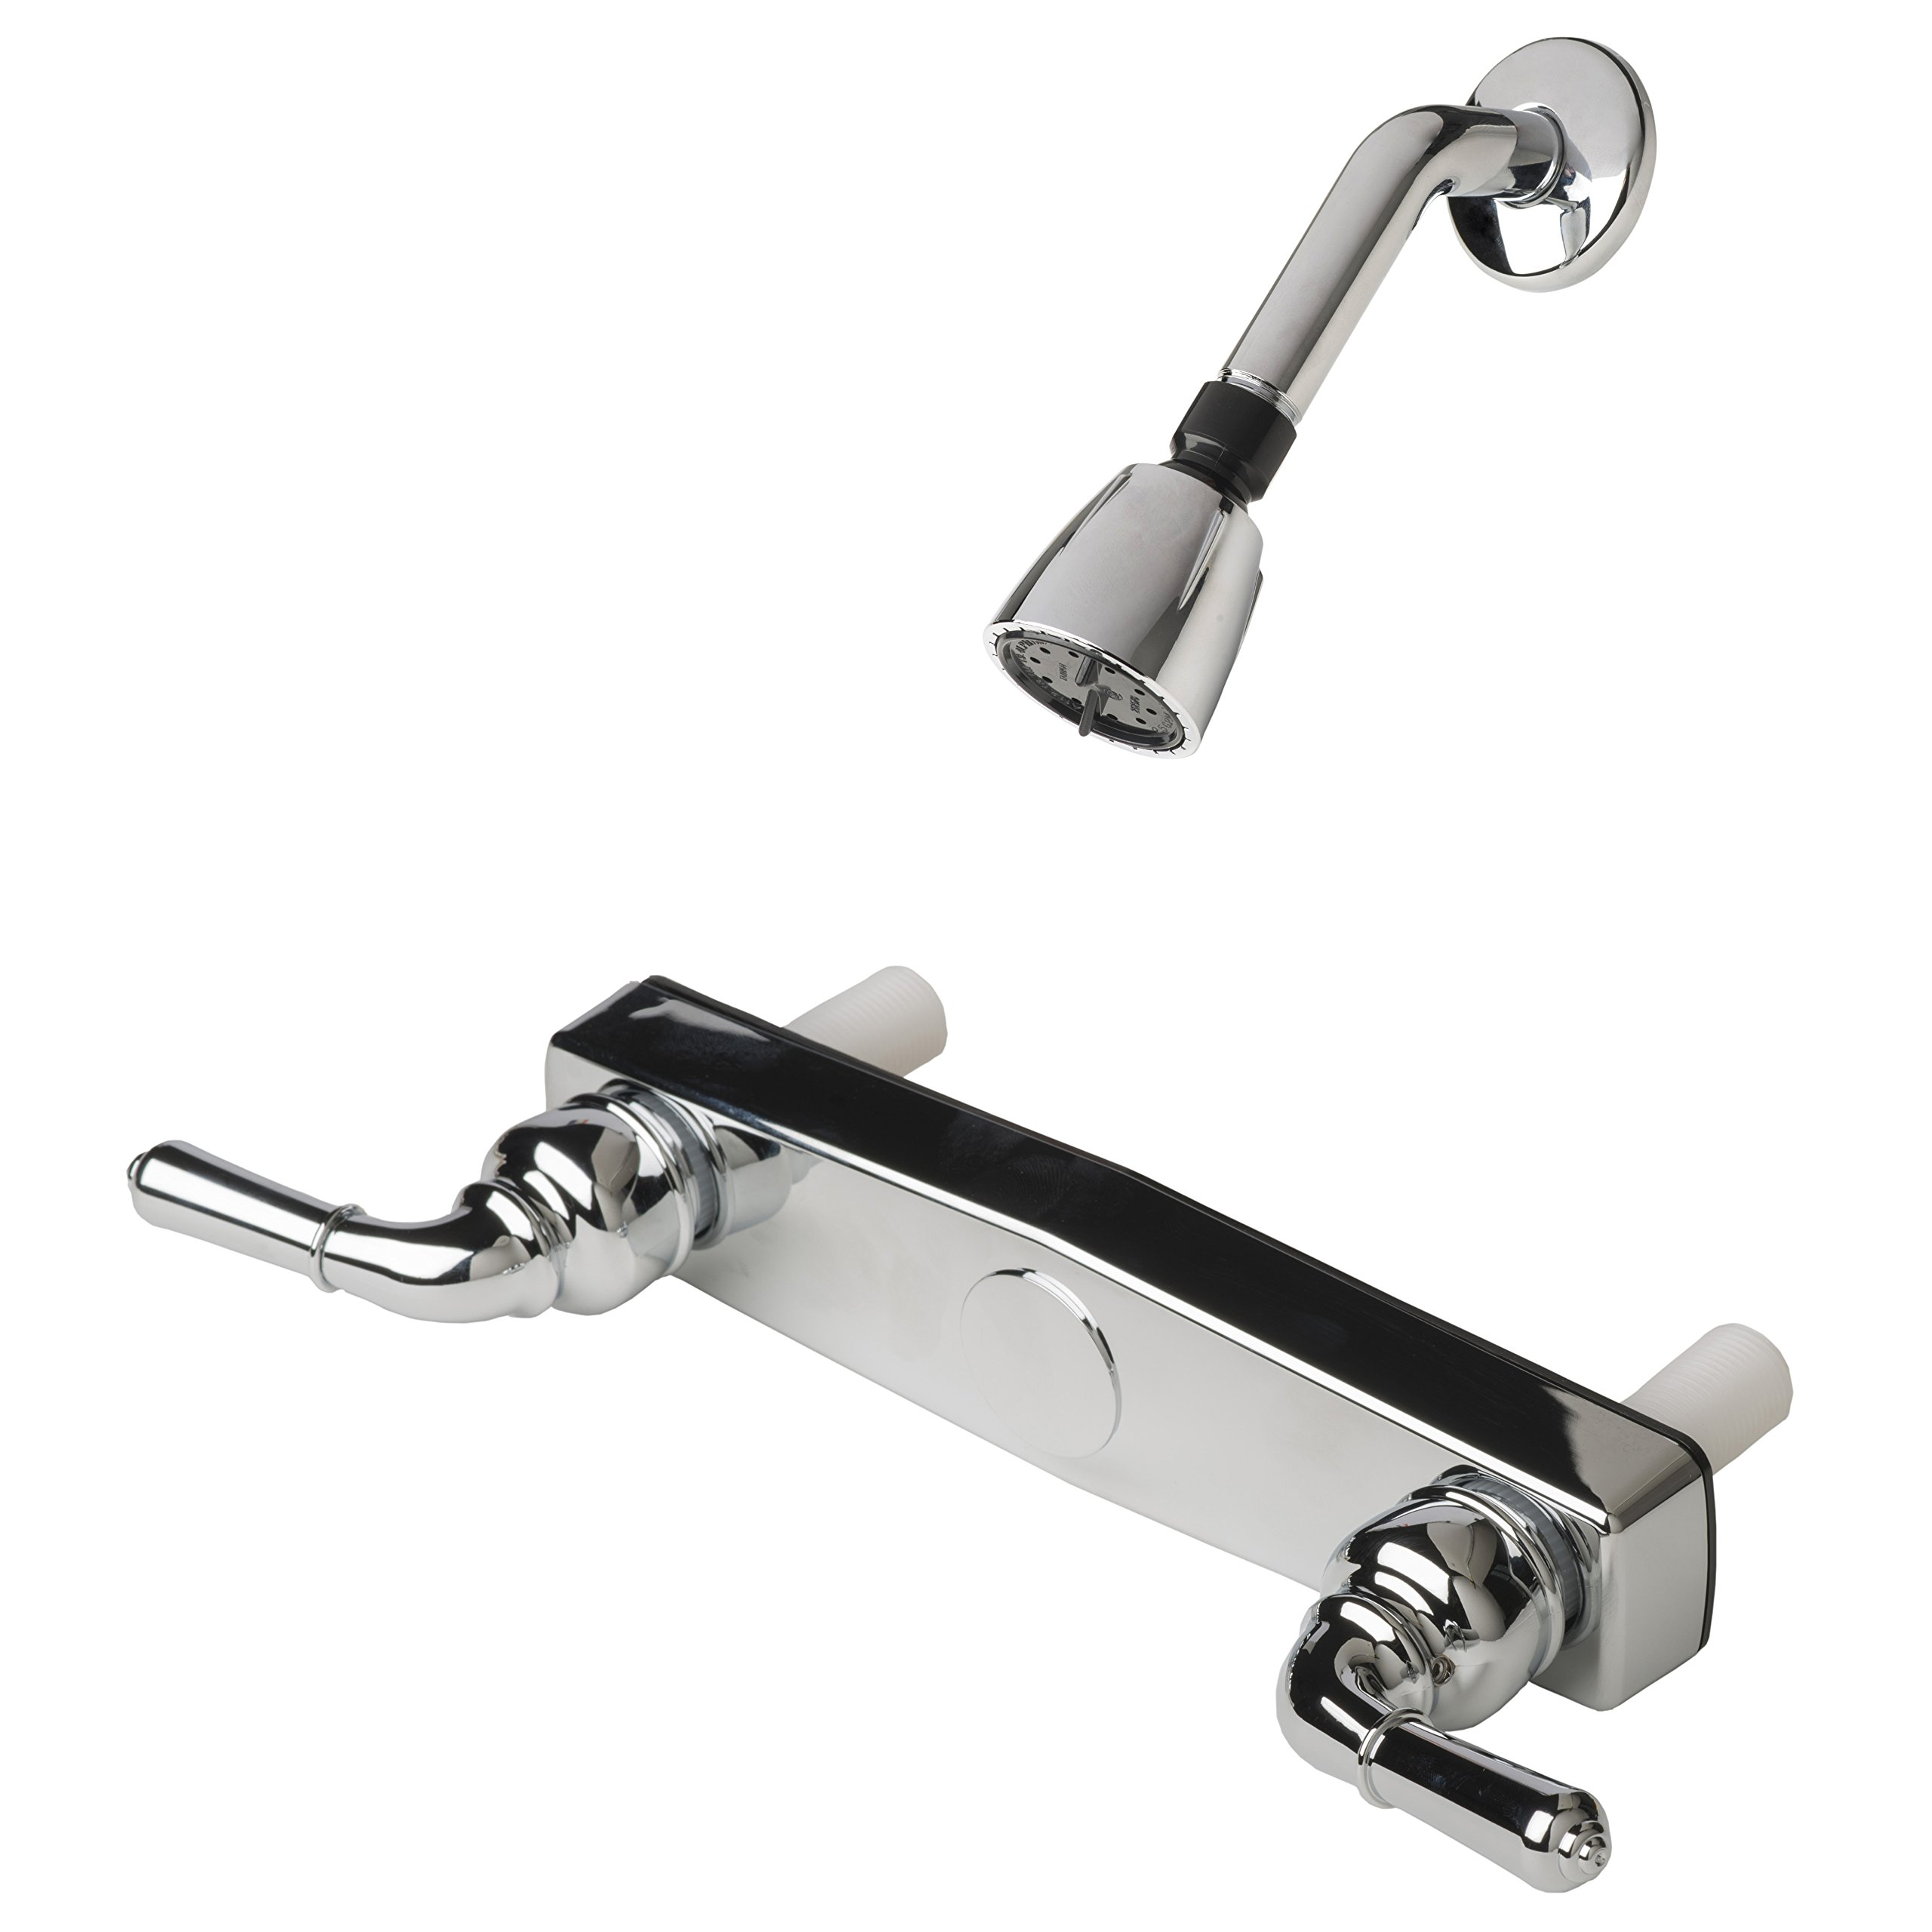 Builders Shoppe 3320CP/4010CP Mobile Home Non-Metallic Two Handle 8'' Shower Faucet Valve with Matching Shower Head/Arm/Flange Chrome Finish